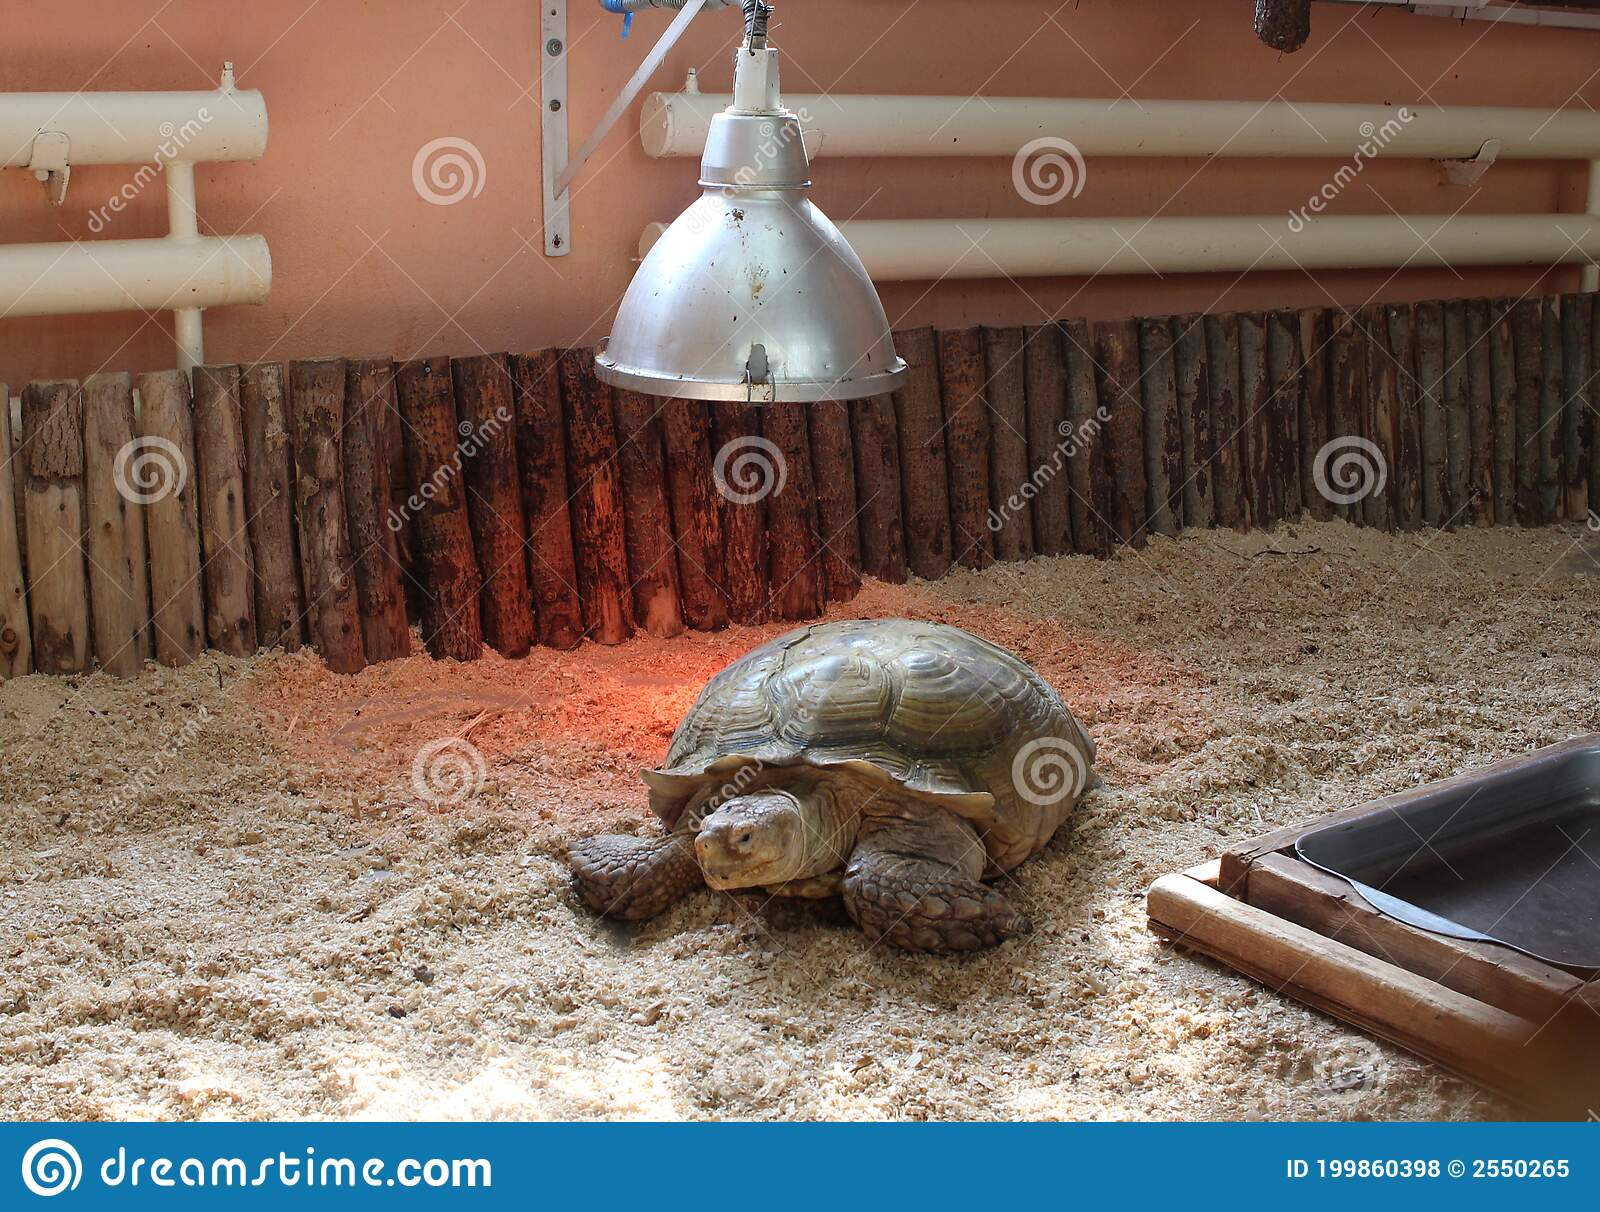 Land Turtle In A Terrarium Basks Under A Lamp Stock Photo Image Of Black Texture 199860398